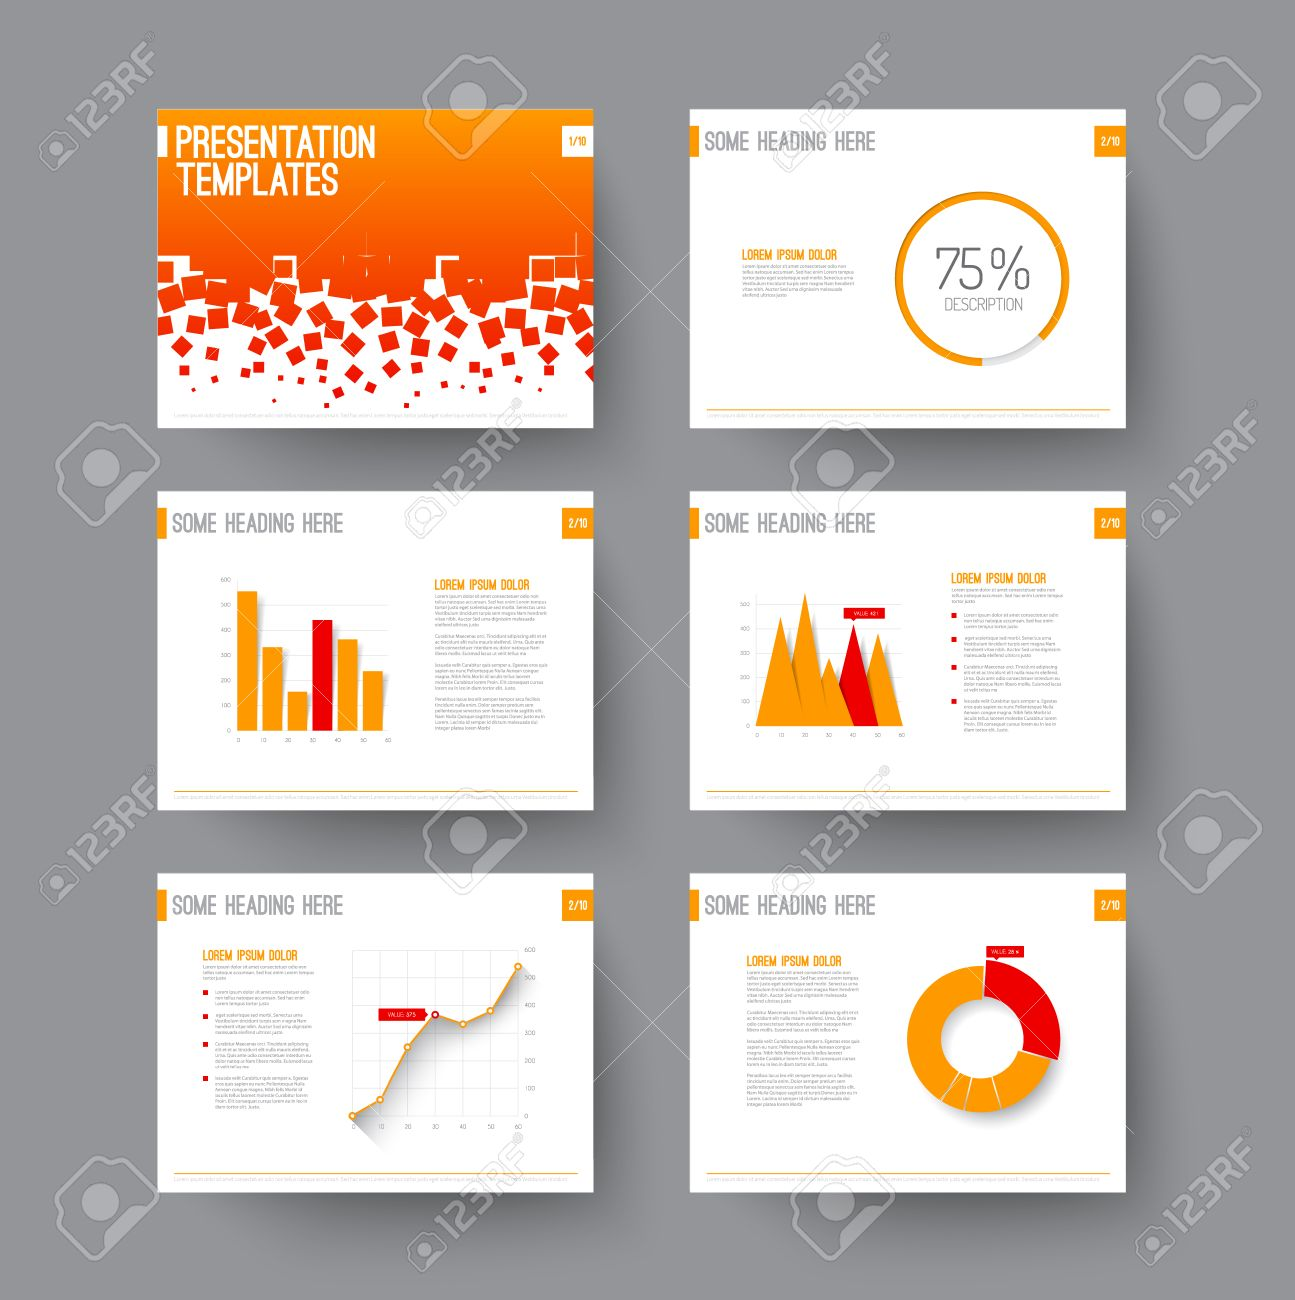 Vector Template For Presentation Slides With Graphs And Charts – Graphs and Charts Templates